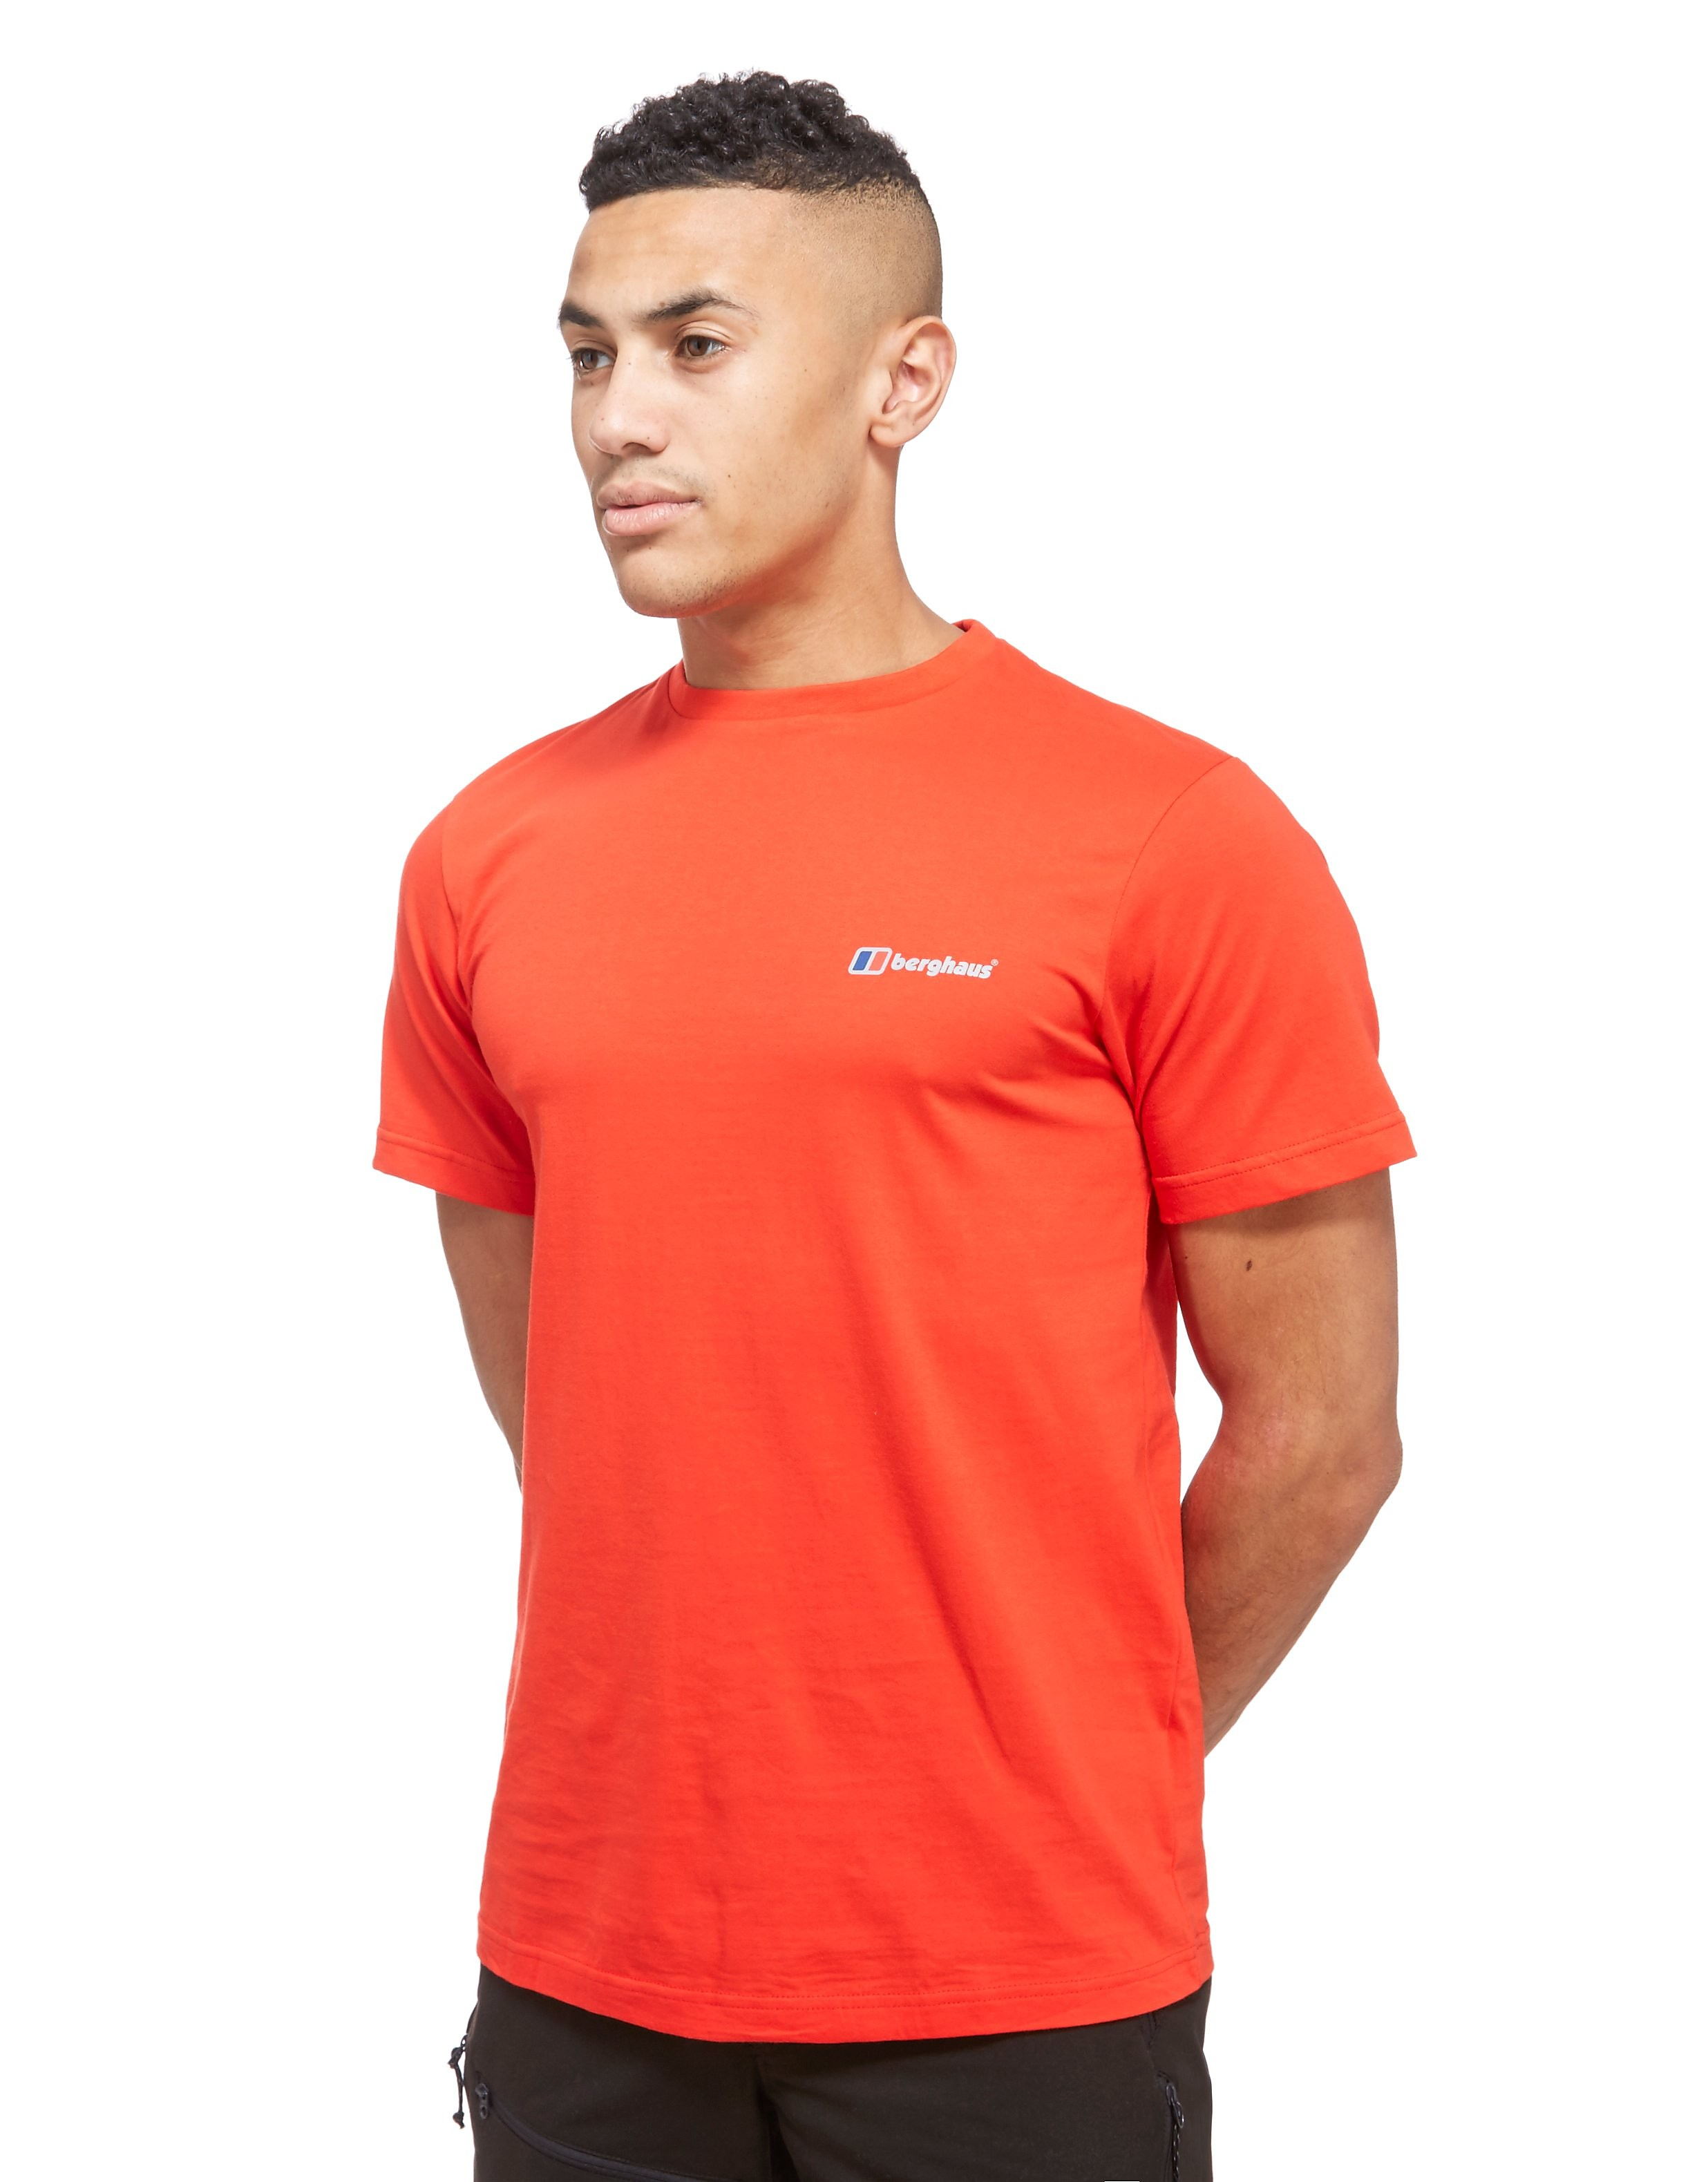 Berghaus Block 5 T-Shirt